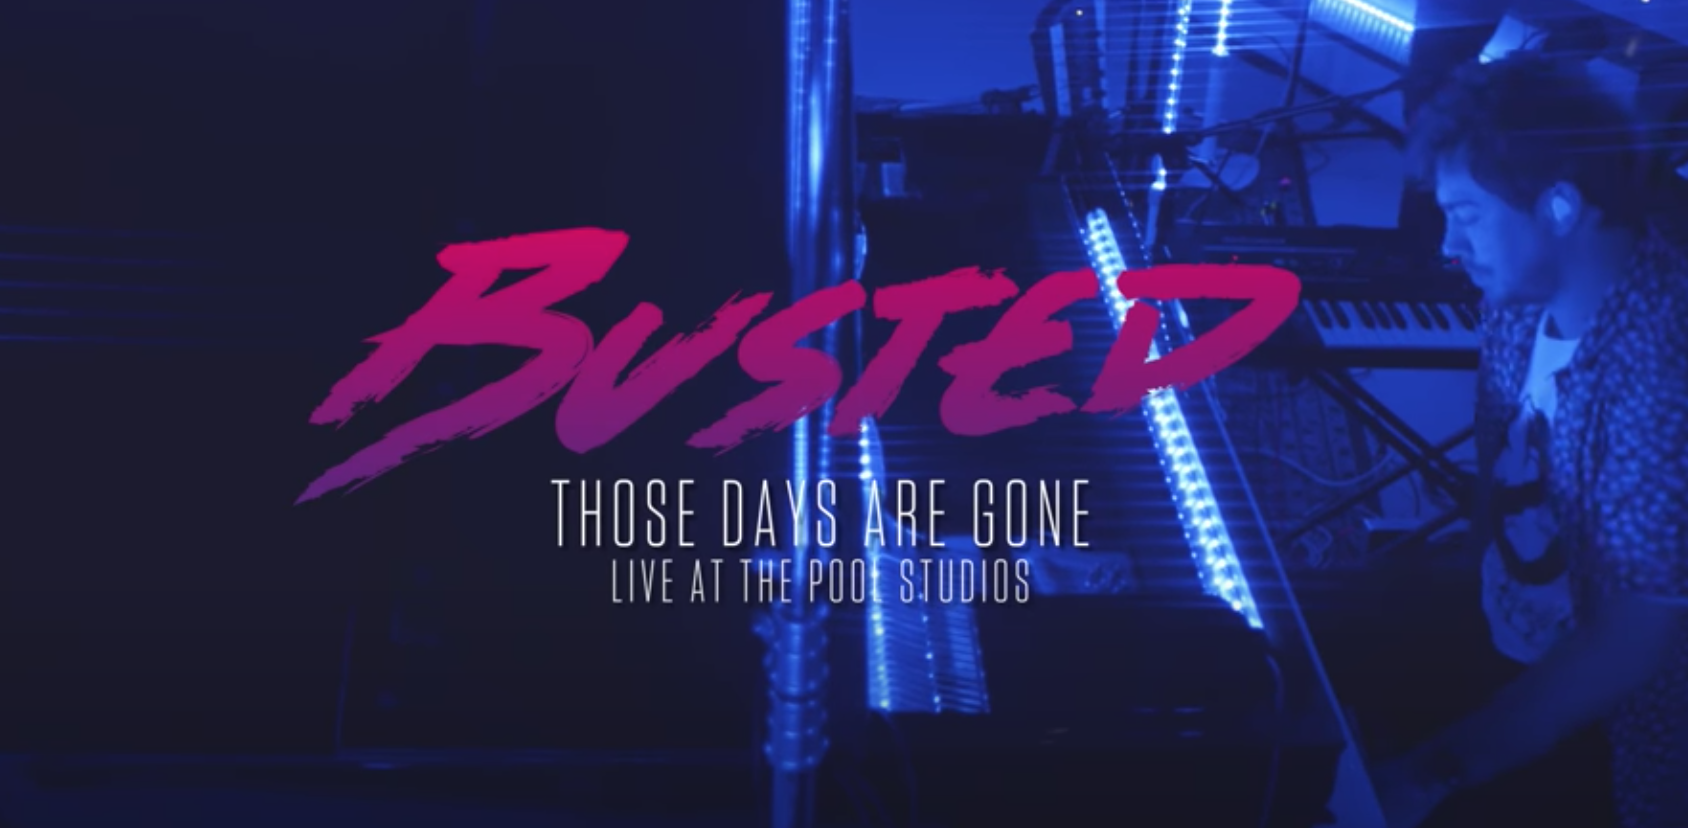 Busted - Those Days Are Gone (Live at The Pool Studios)